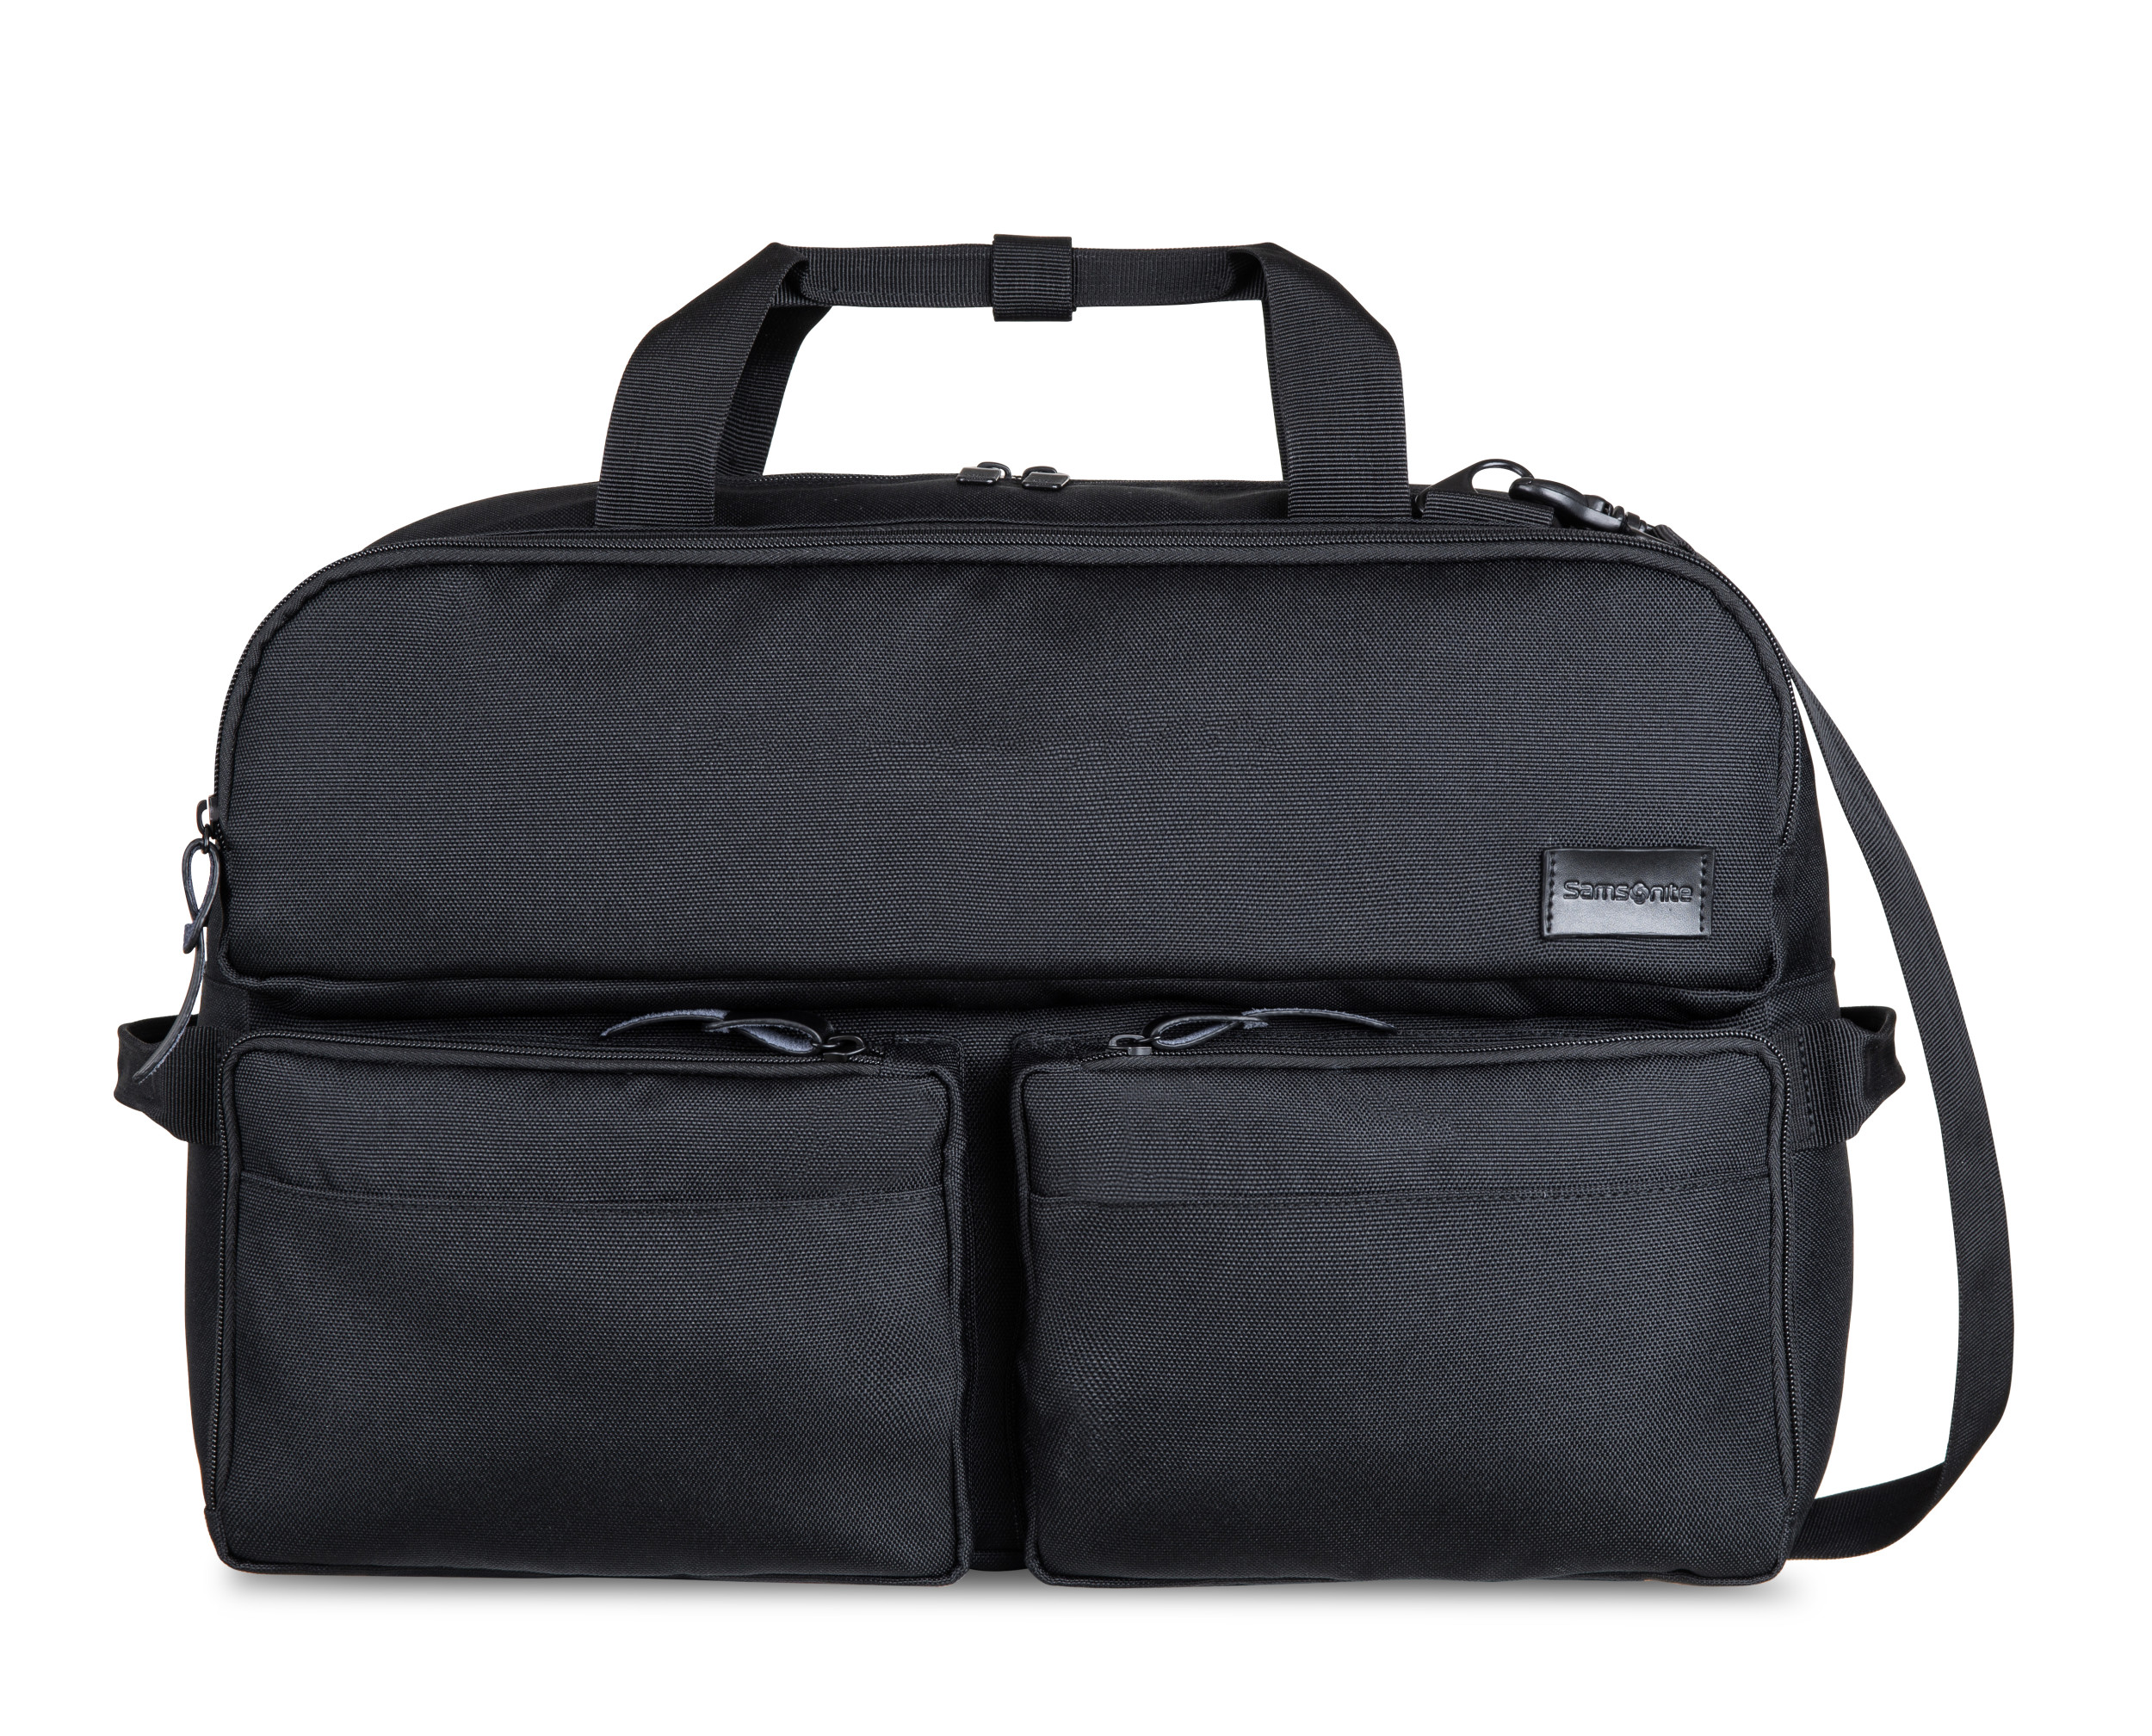 Samsonite 100049 - Morgan Travel Bag